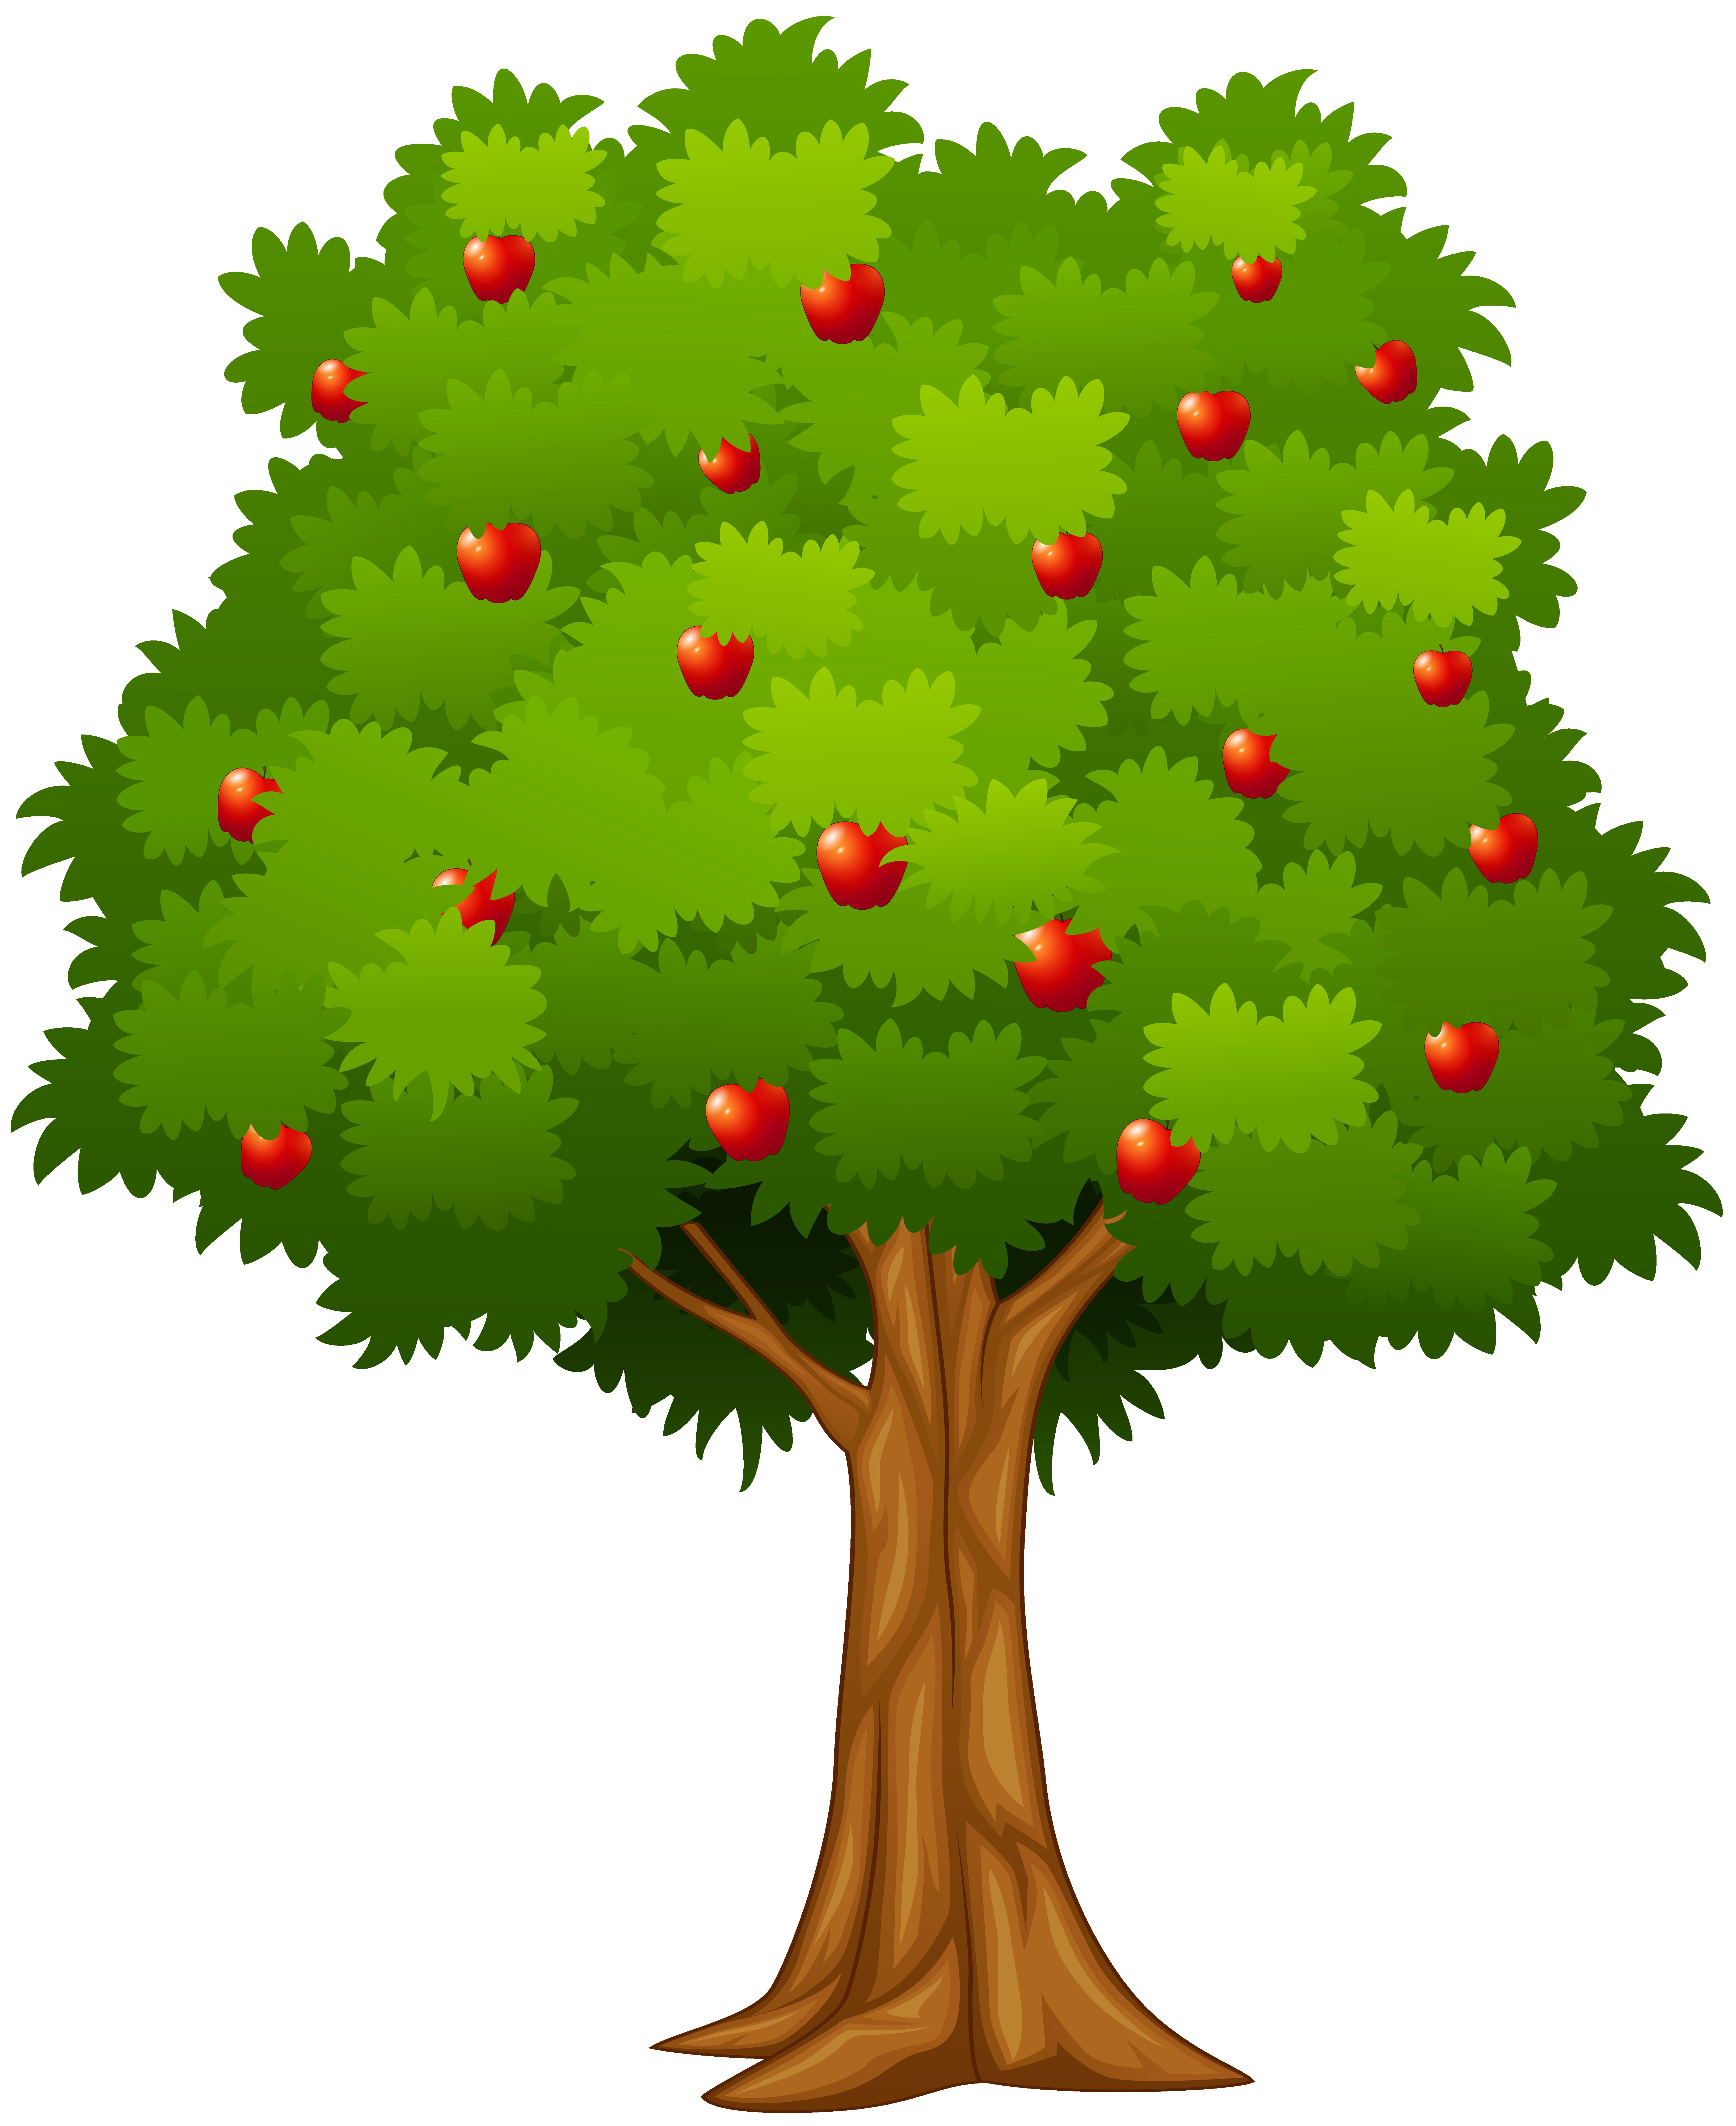 Plant clipart tree.